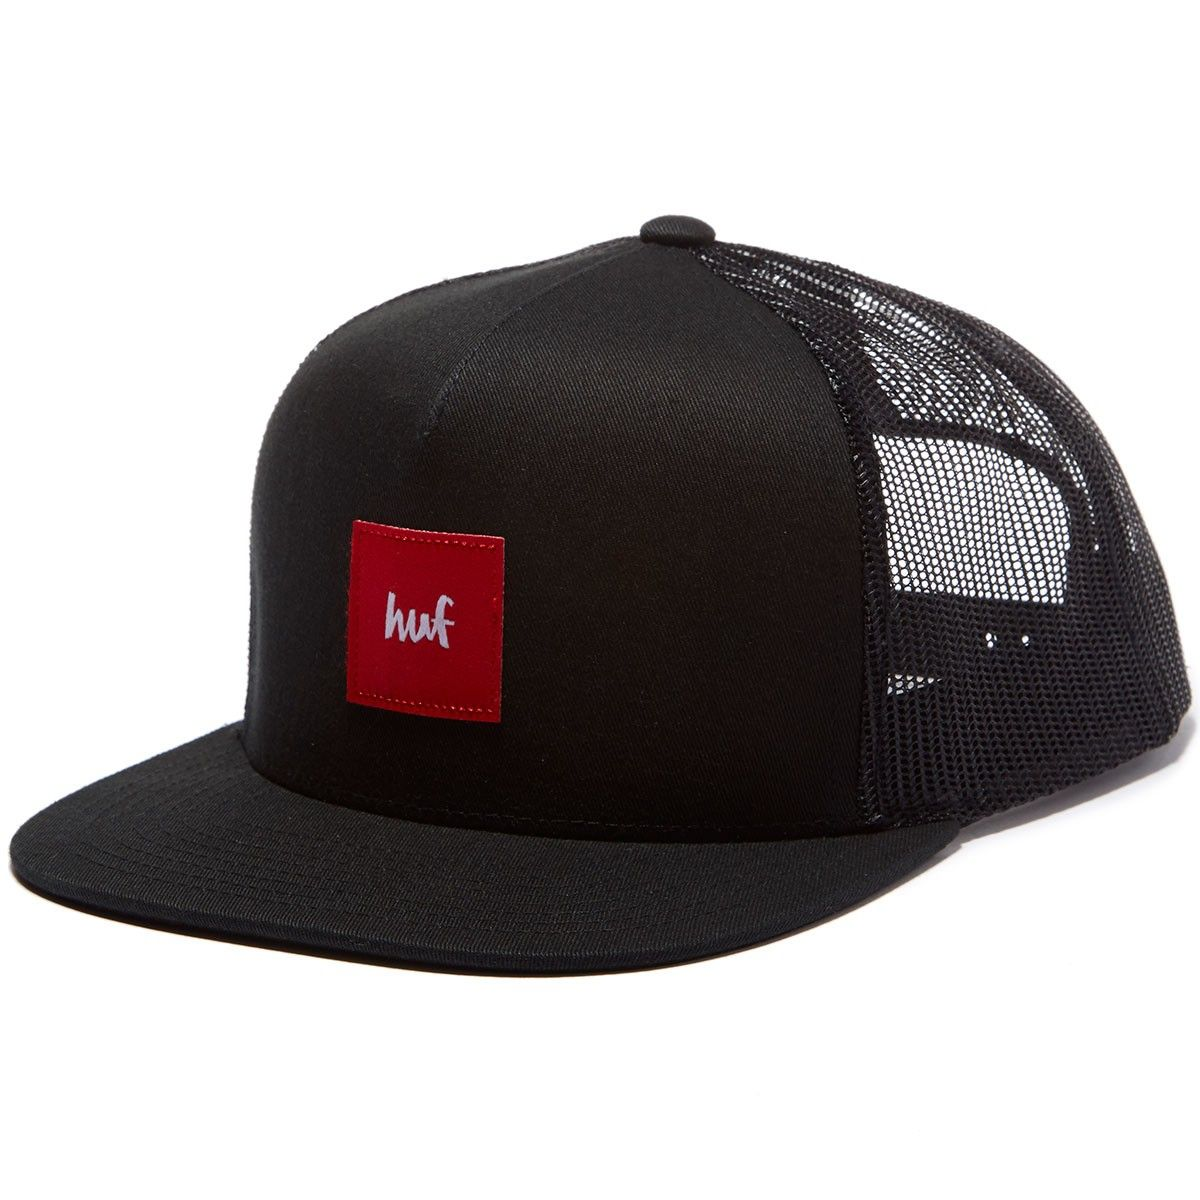 Huf X Chocolate Trucker Hat Trucker Hat Trucker Hats